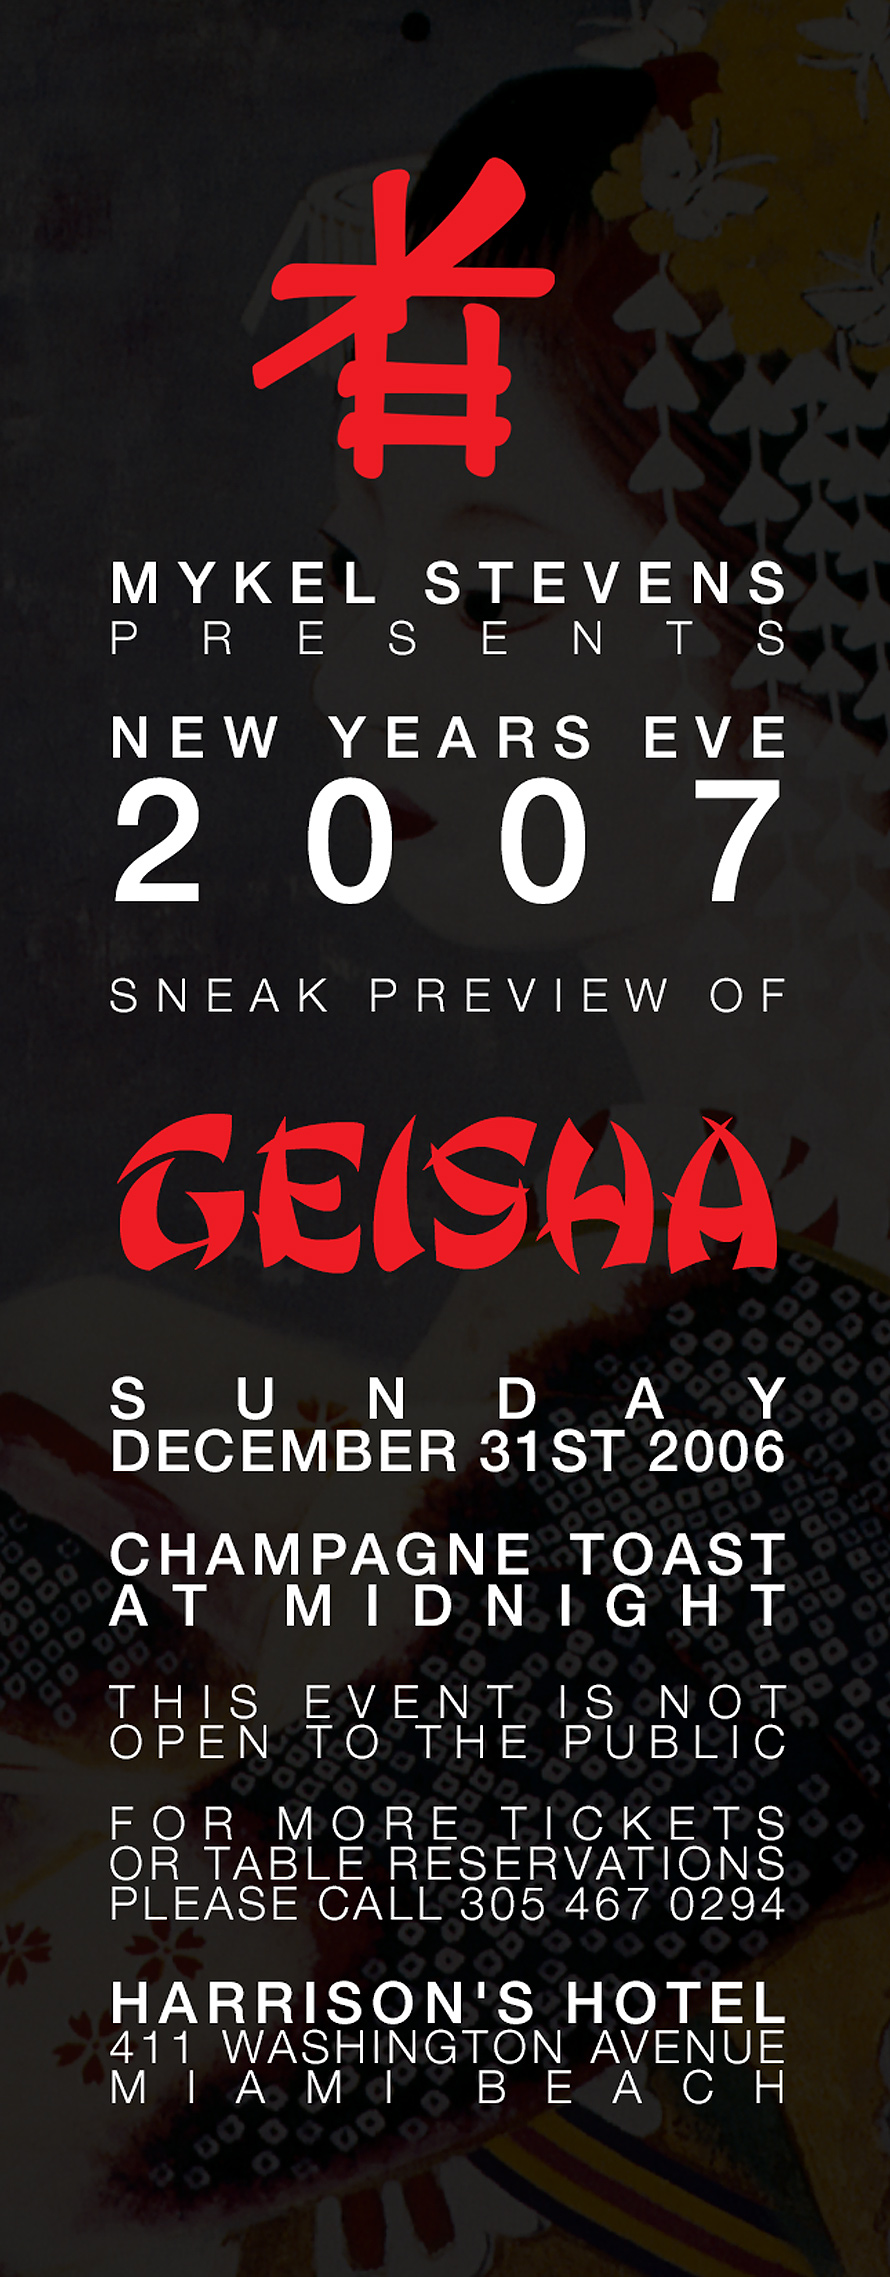 Mykel Stevens Presents Sneak Preview Geisha